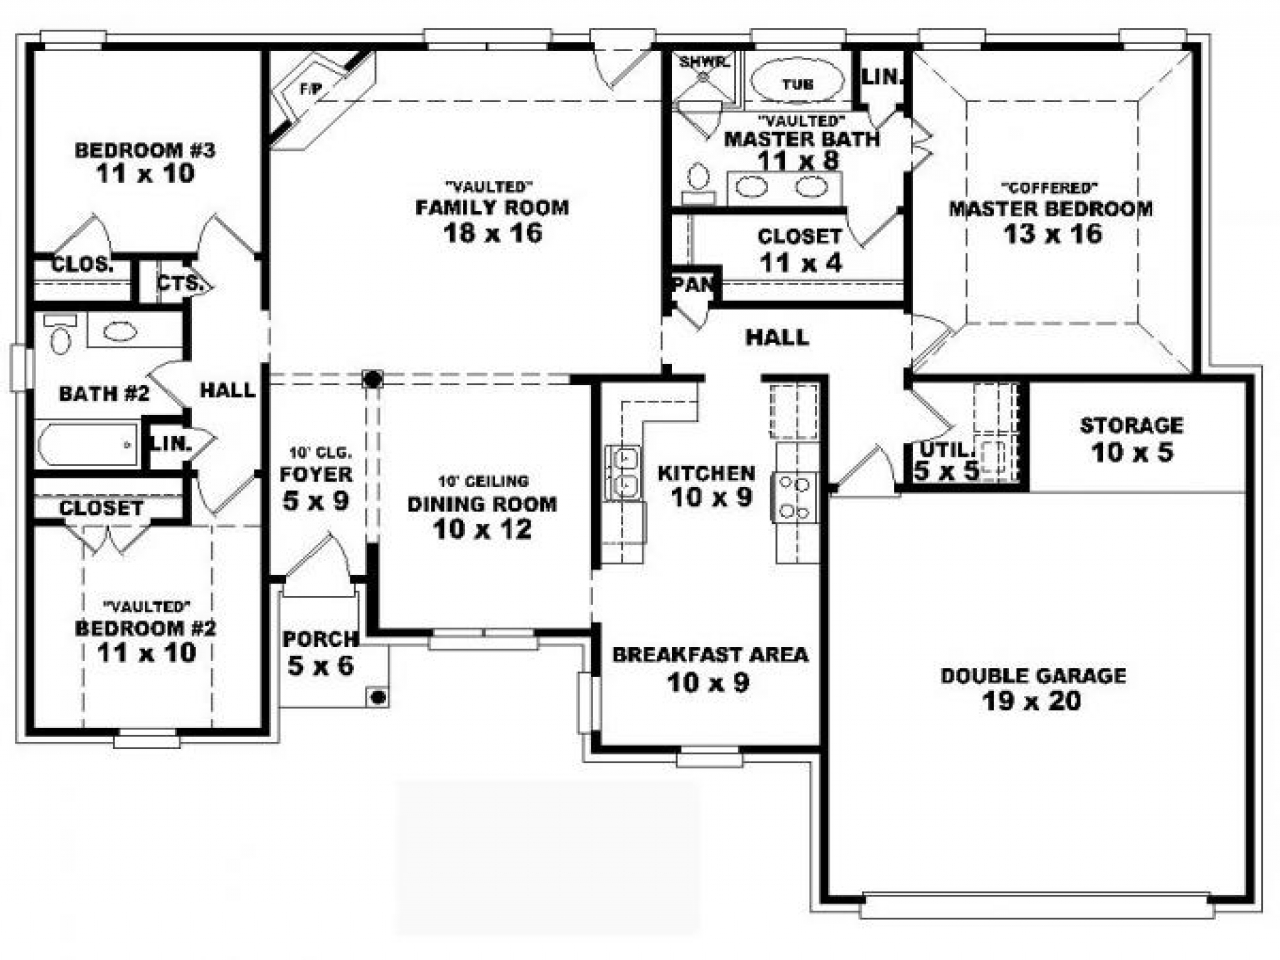 4 Bedroom One Story House Plans 4-Bedroom Double Wides, 4 ...